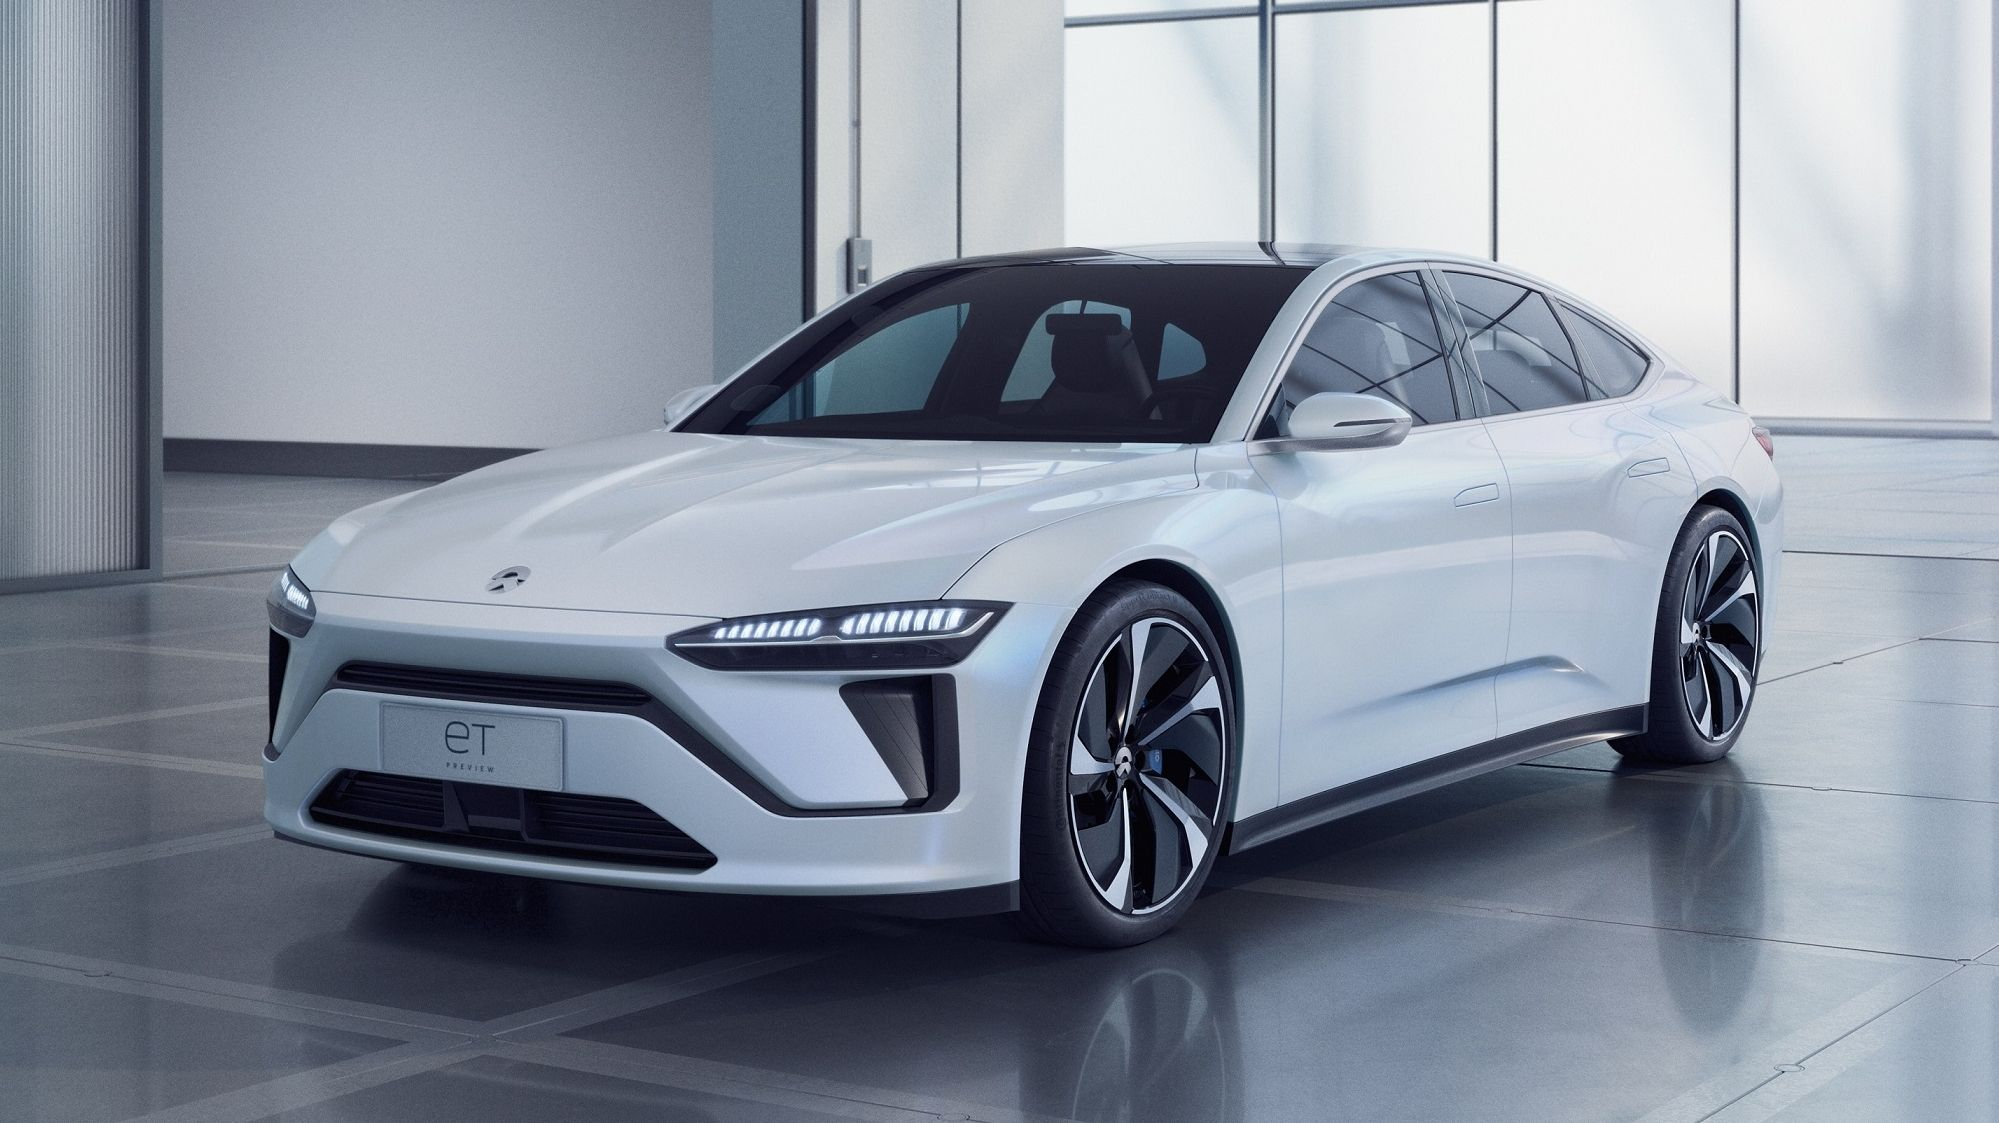 Stunning Nio Et Preview Concept Would Be A Win For The U S Top Speed Electric Cars Solar Powered Cars Car